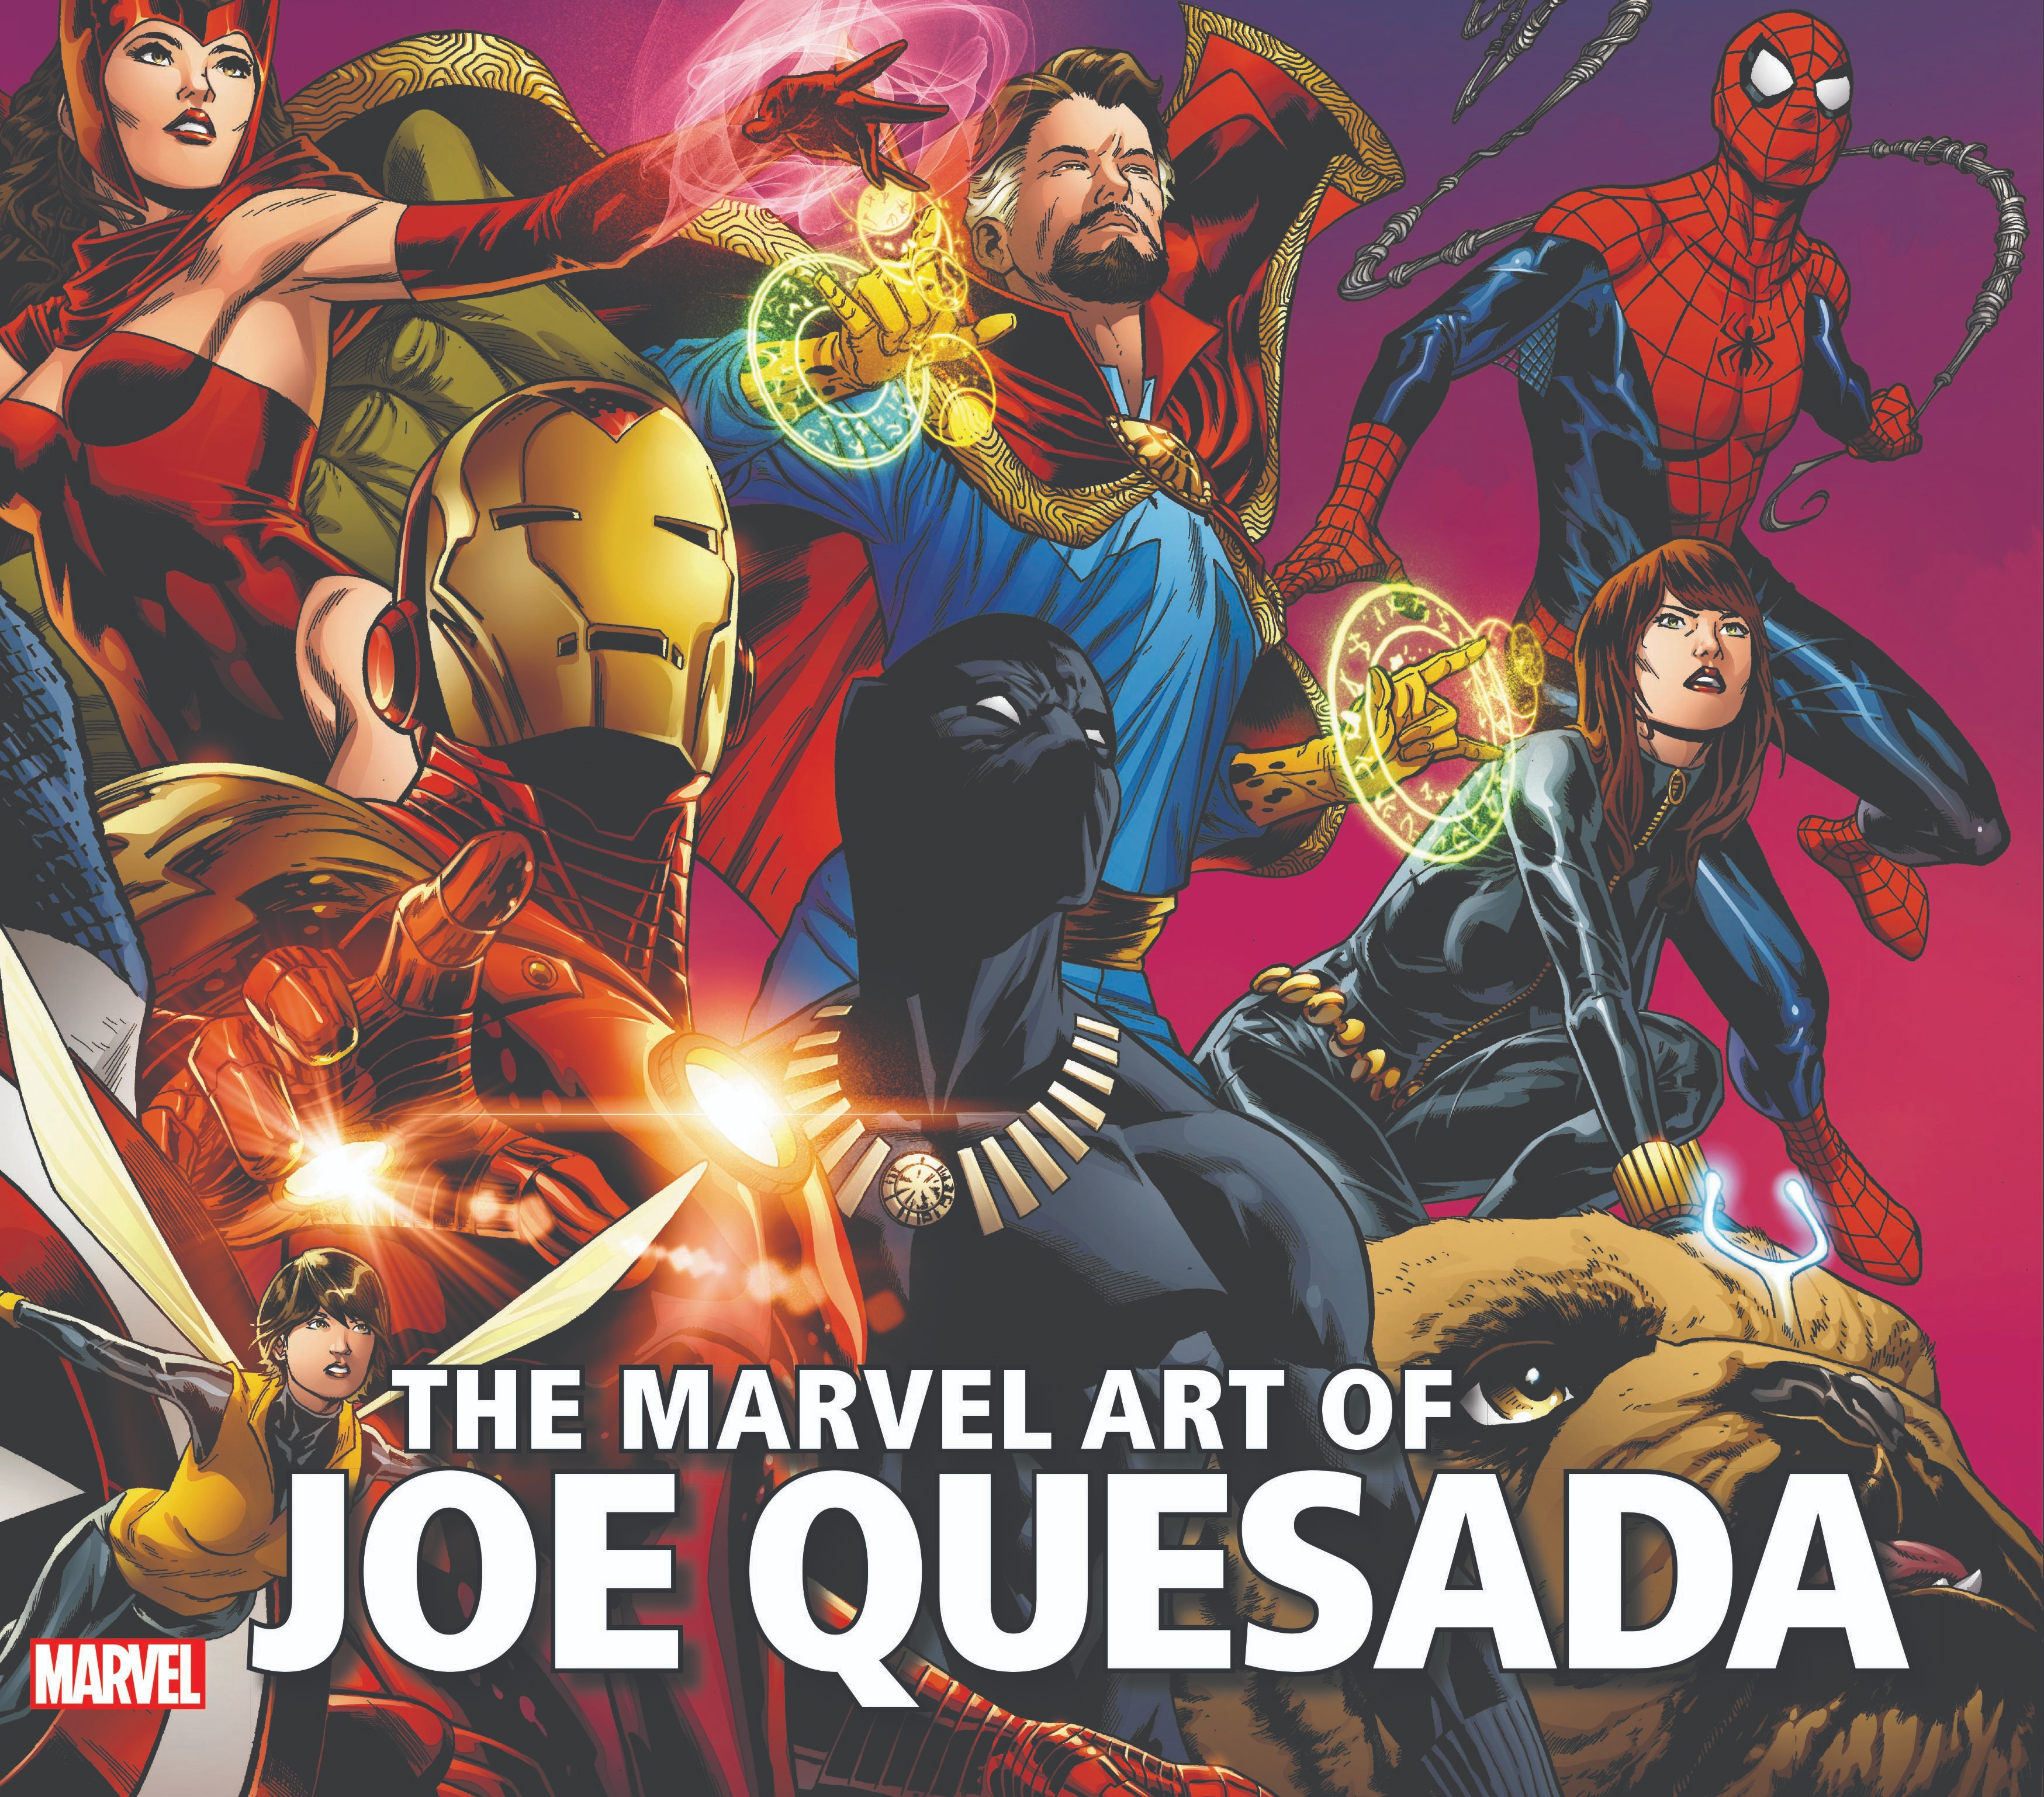 A book cover featuring color illustrations of many Marvel superheroes.